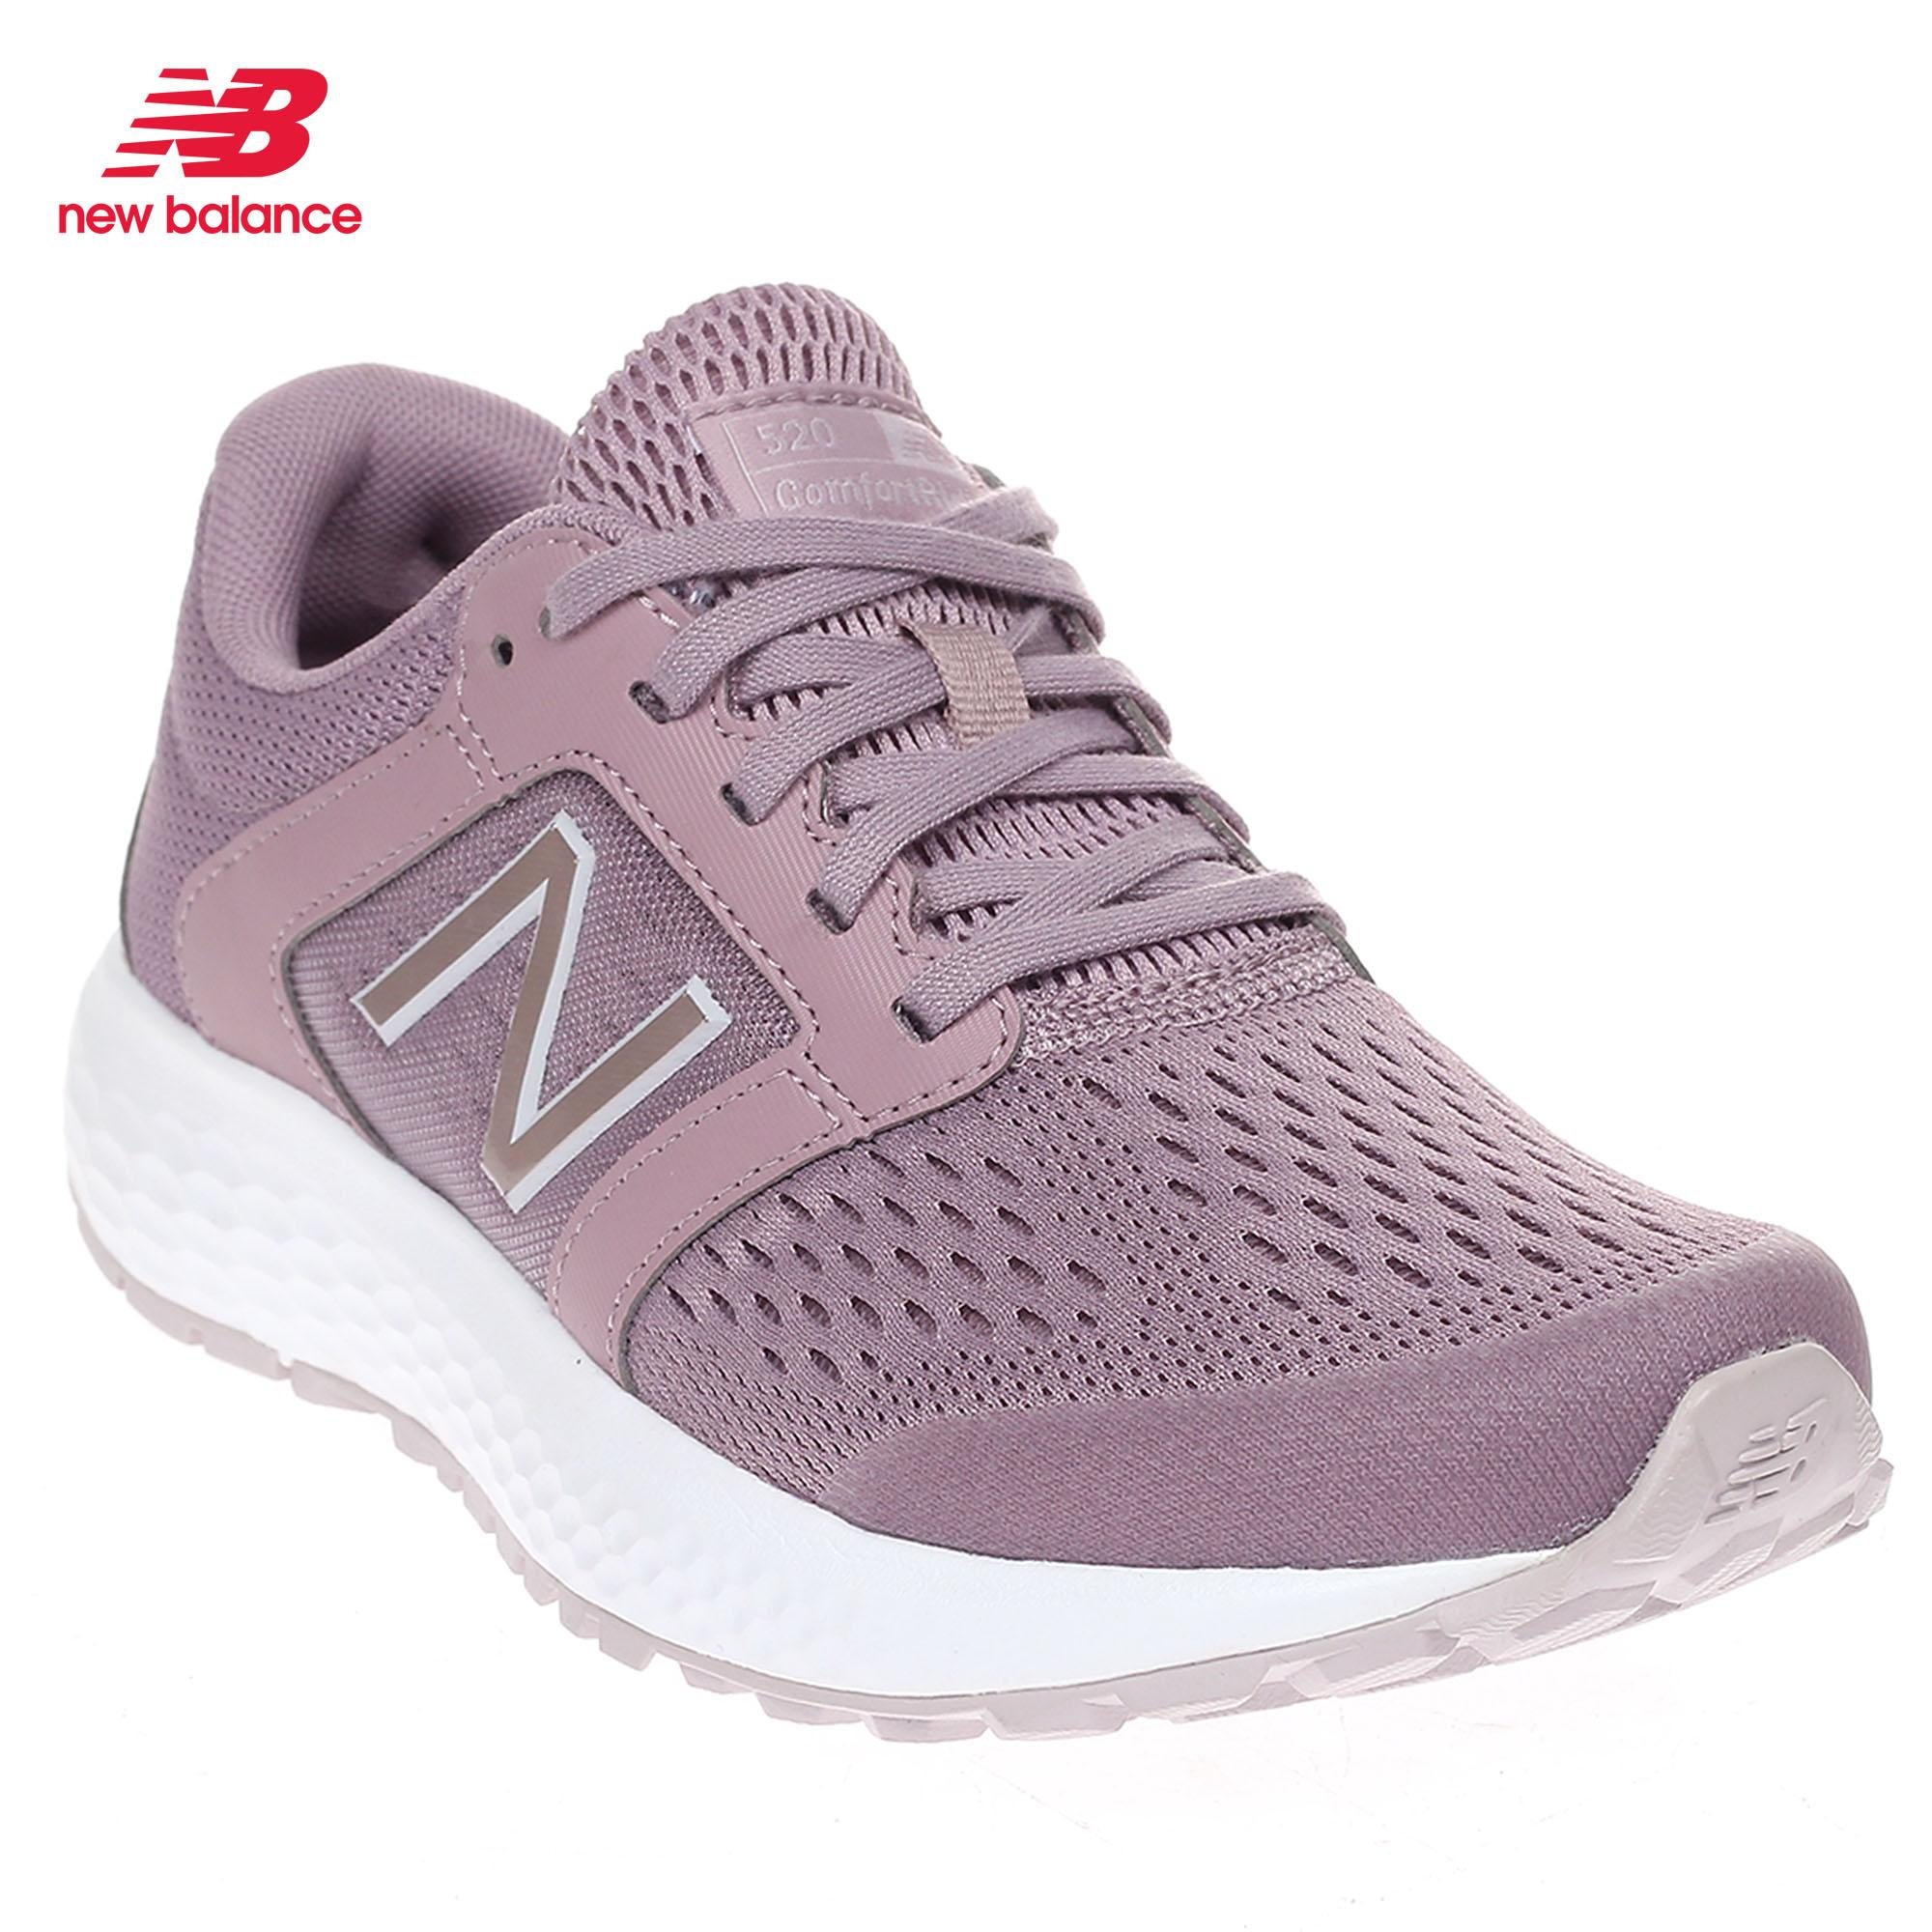 81251902003f New Balance Philippines - New Balance Sports Shoes for sale - prices ...